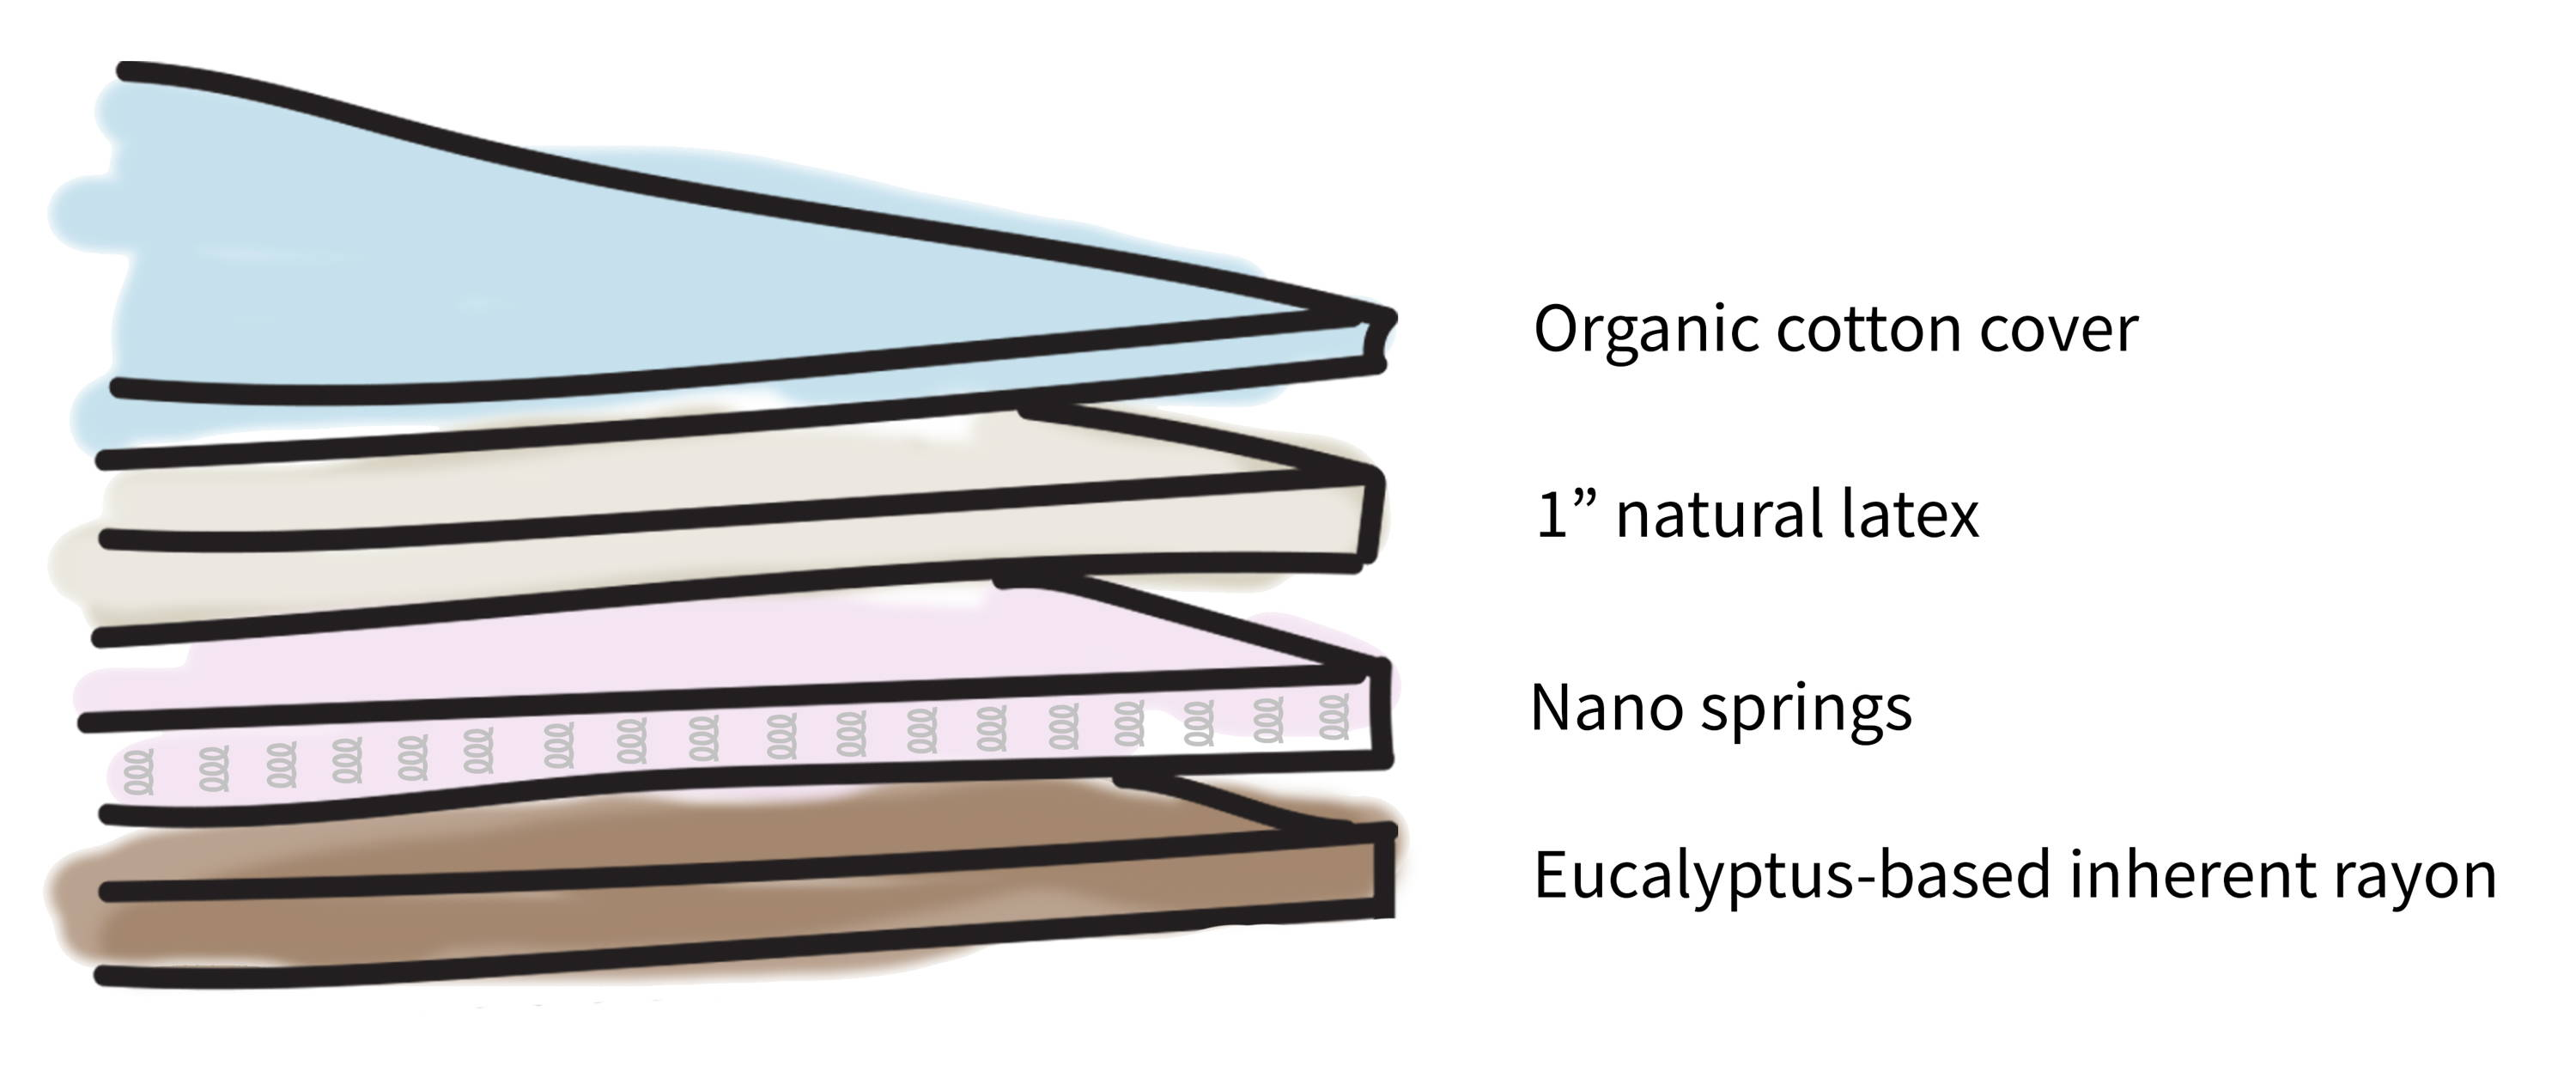 Layers of a topper showing the content of Real Bed Topper. Illustration. Showing layers from top to bottom: organic cotton cover, one inch natural latex, nano springs, eucalyptus based inherent rayon